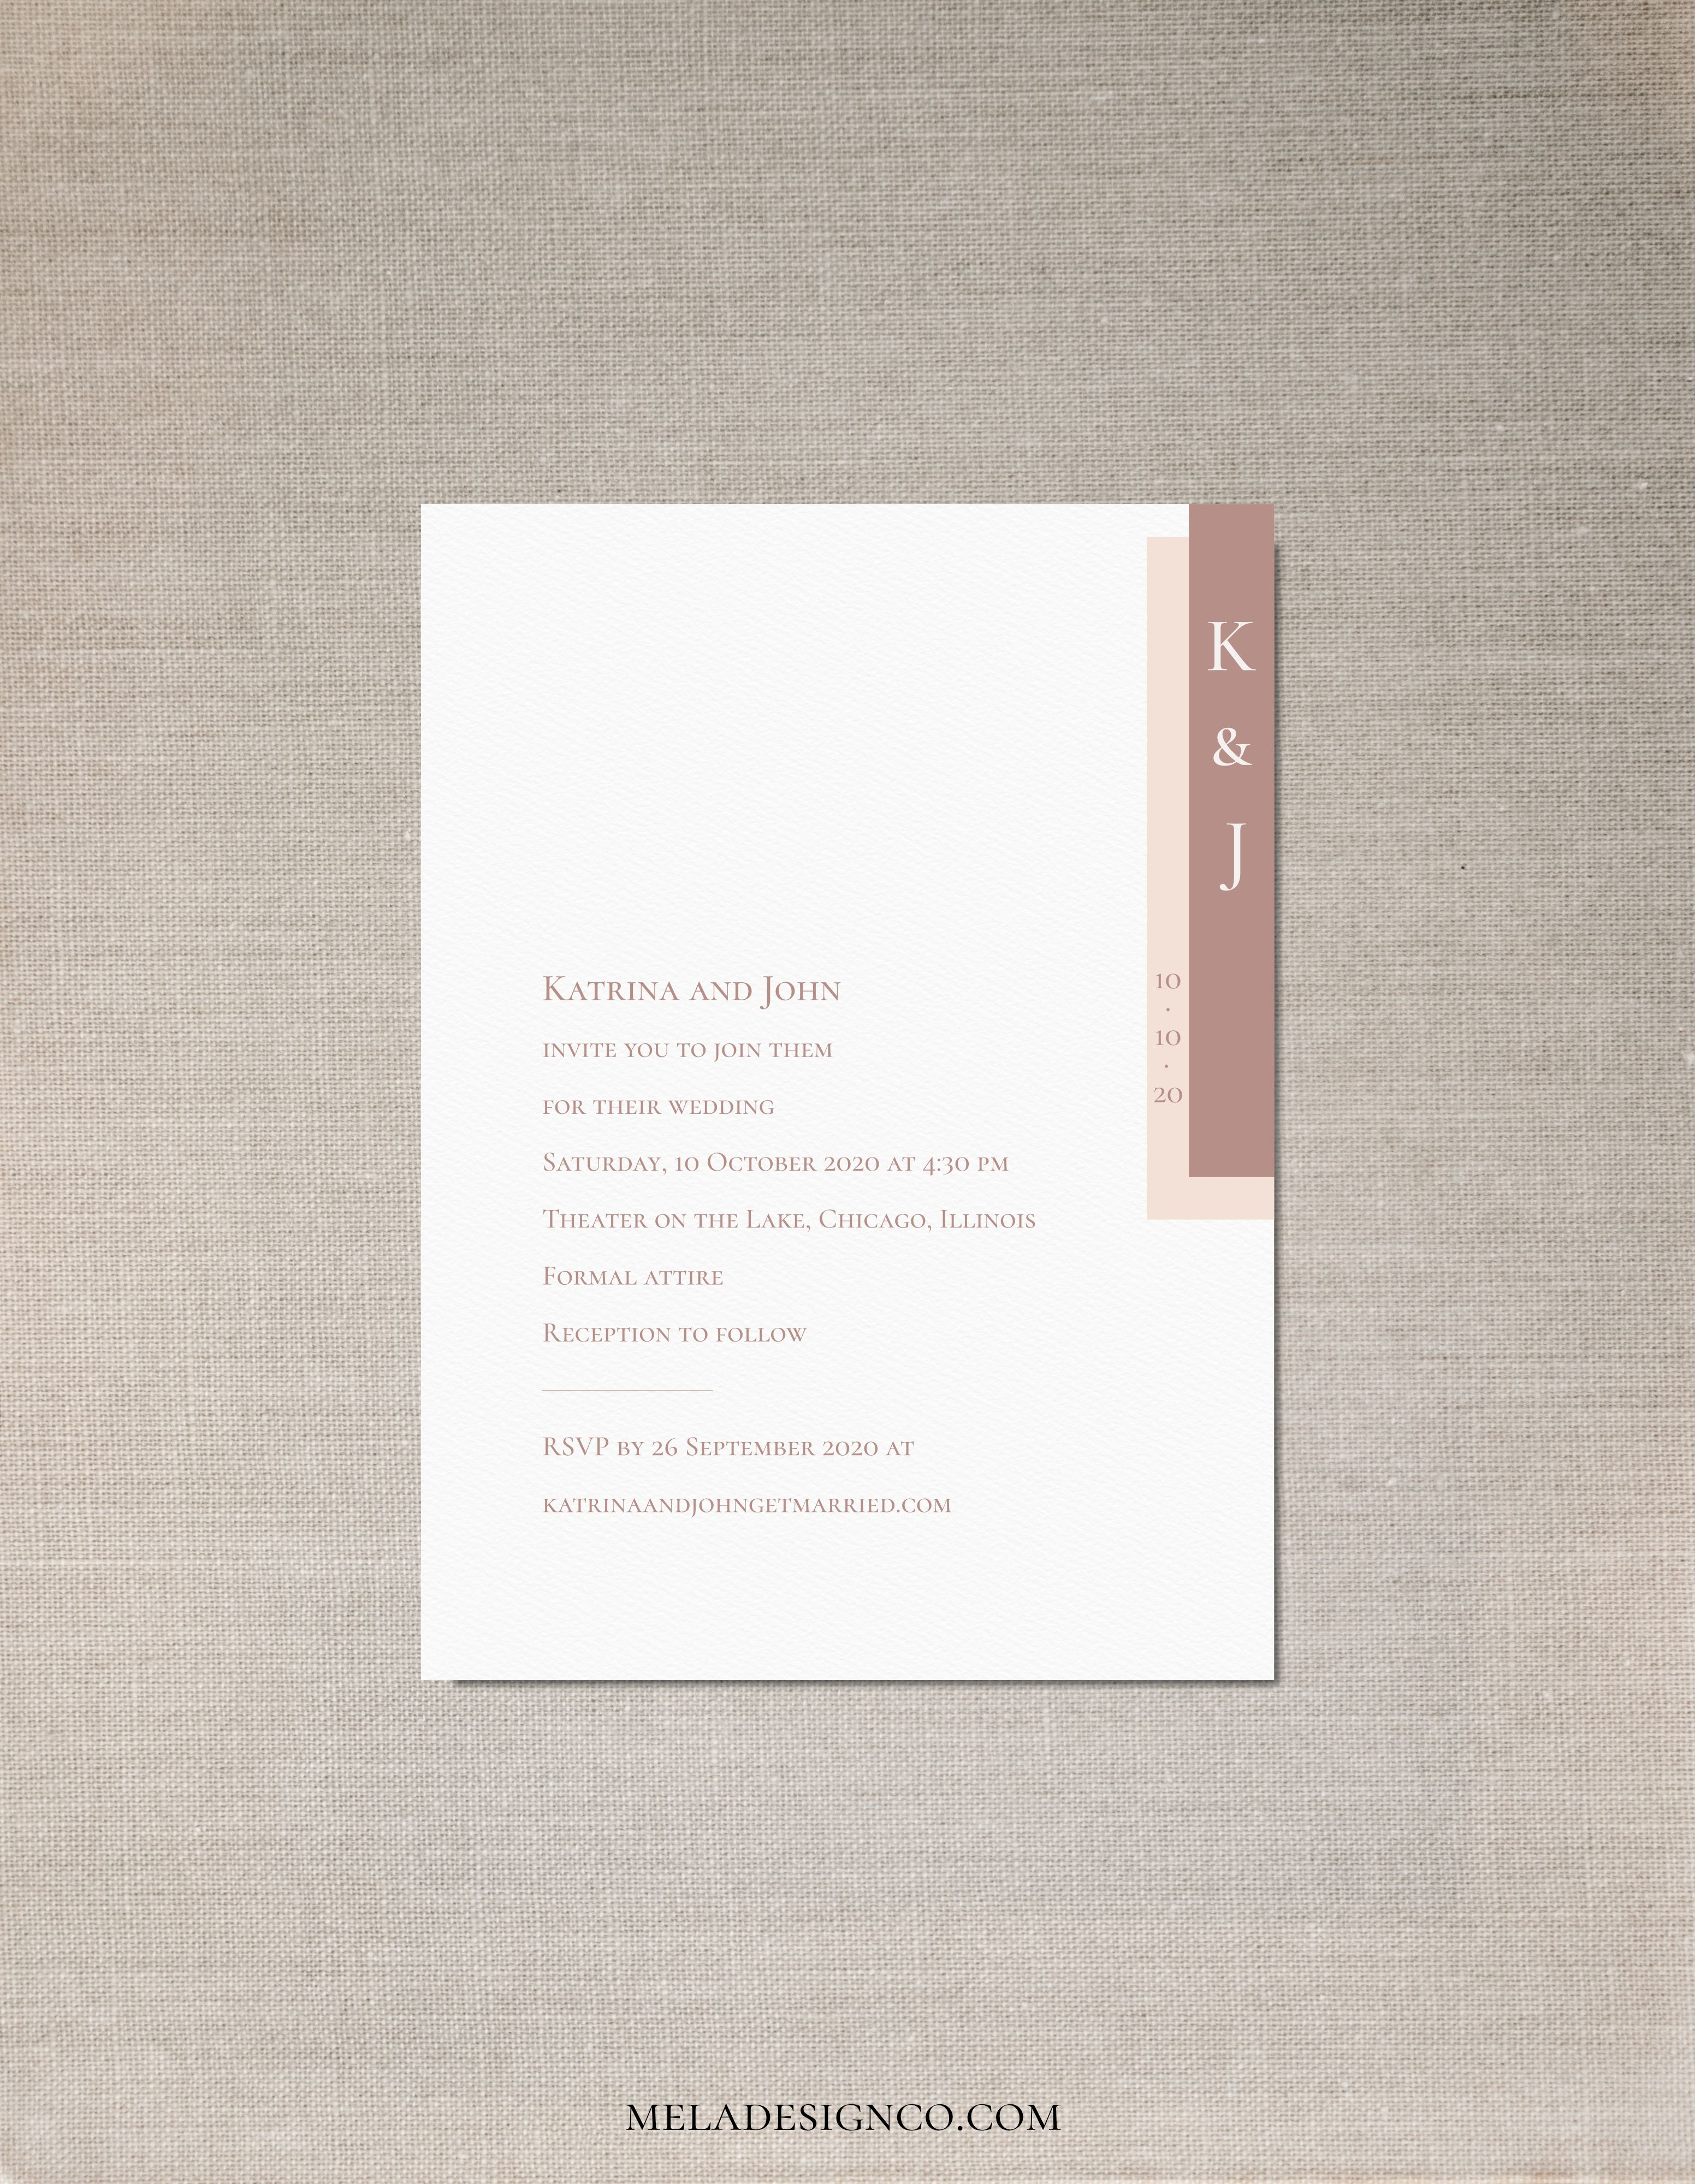 Includes Wedding Invitation Dusty Pink Wedding Invitation Set with Black Ink Printed RSVP and Envelope. Information Card